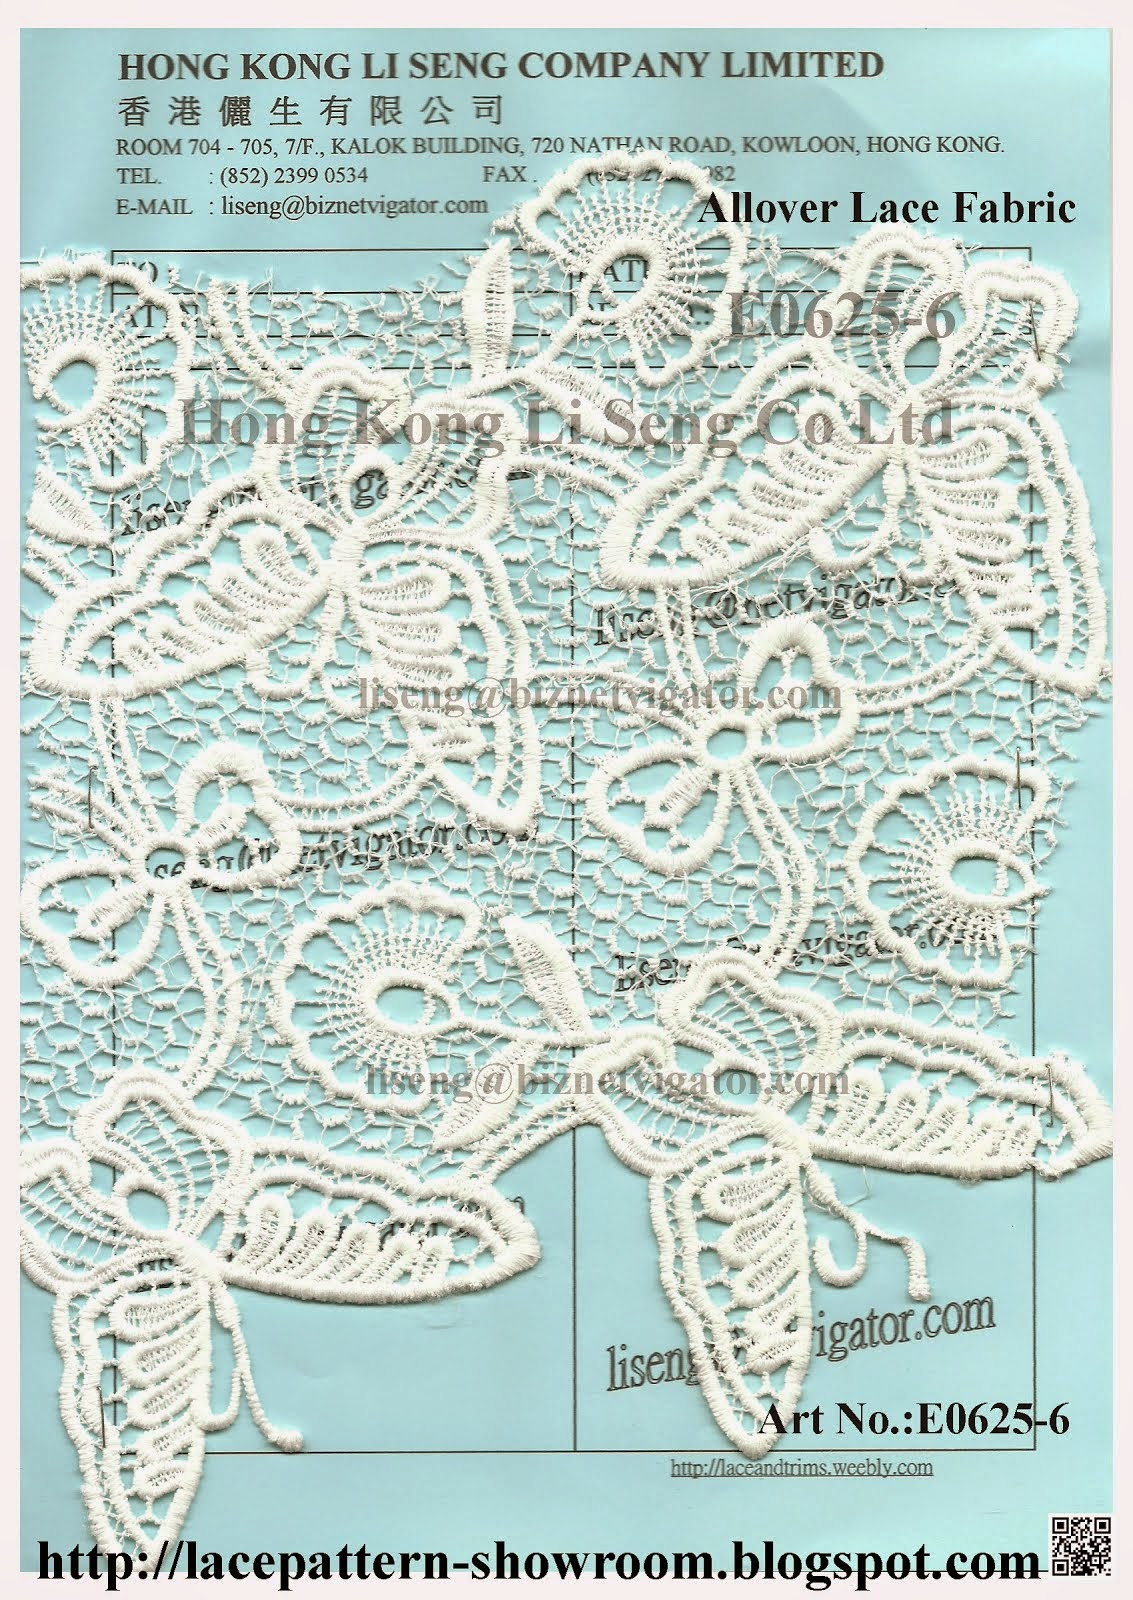 New Butterfly Pattern-Allover Lace Fabric Manufacturer Wholesale Supplier-Hong Kong Li Seng Co Ltd